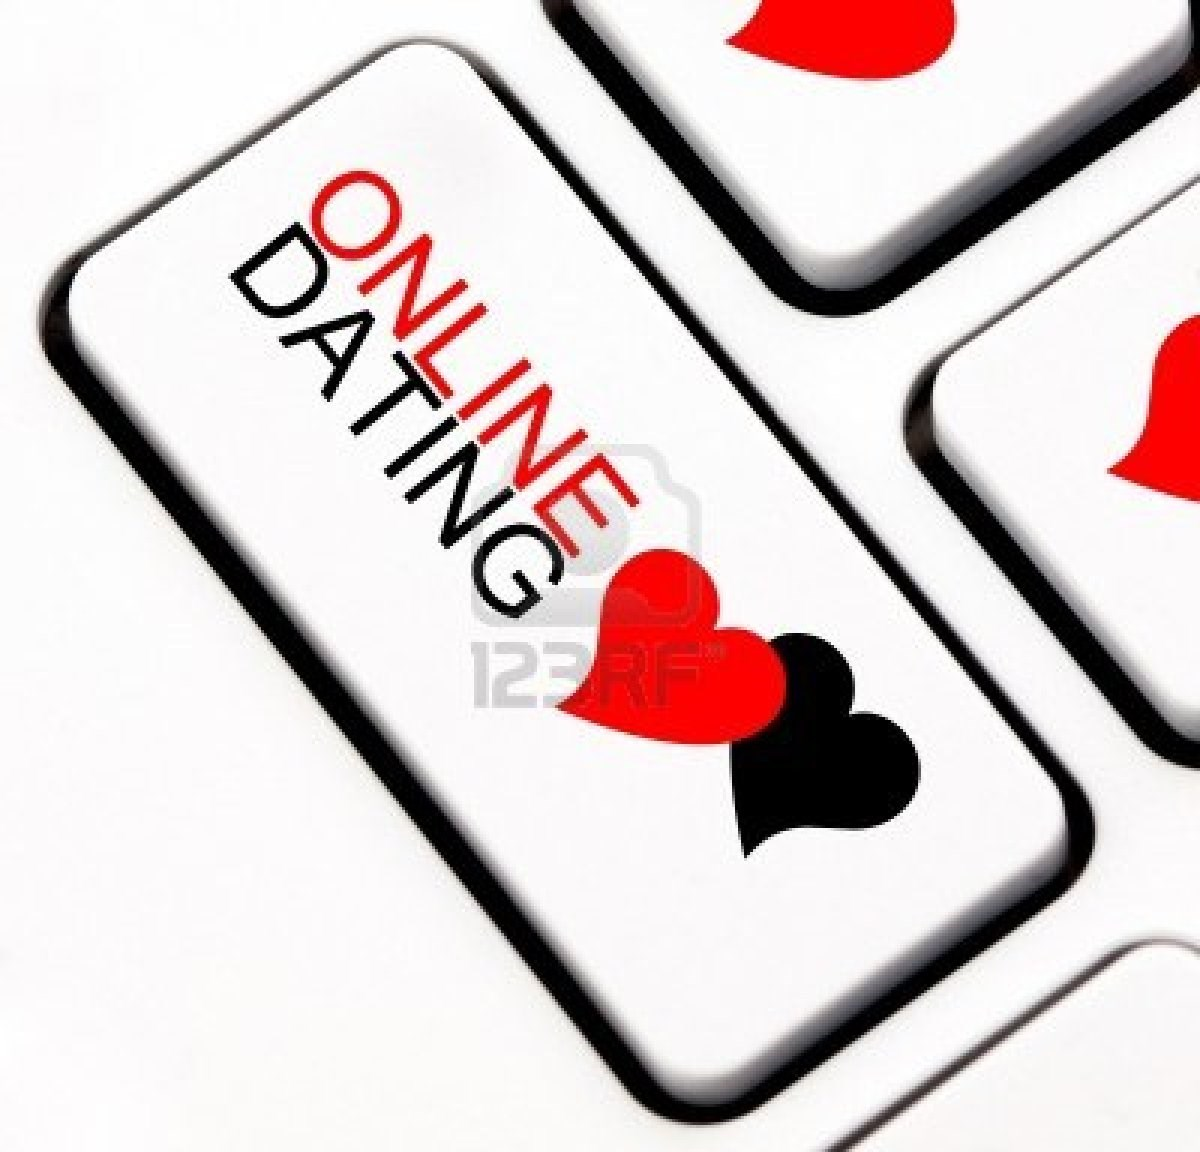 Linguistic traces of deception in online dating profiles by leonora williamson